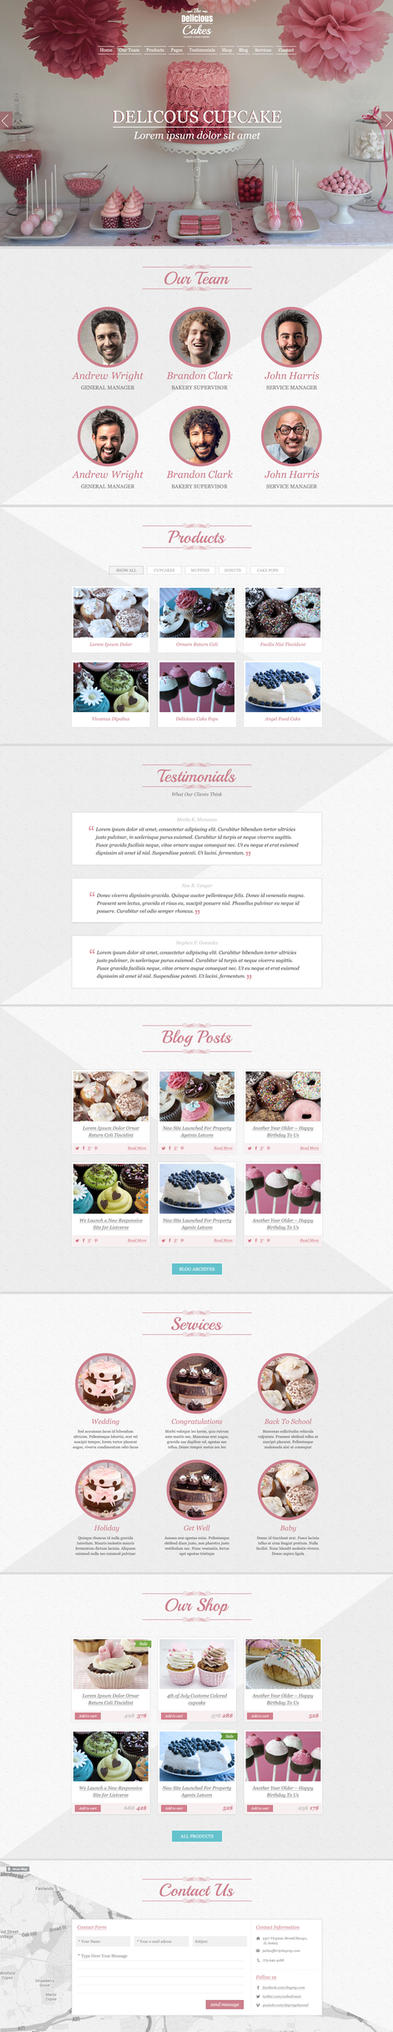 TheDeliciousCake PSD Template - Light Version by webodream